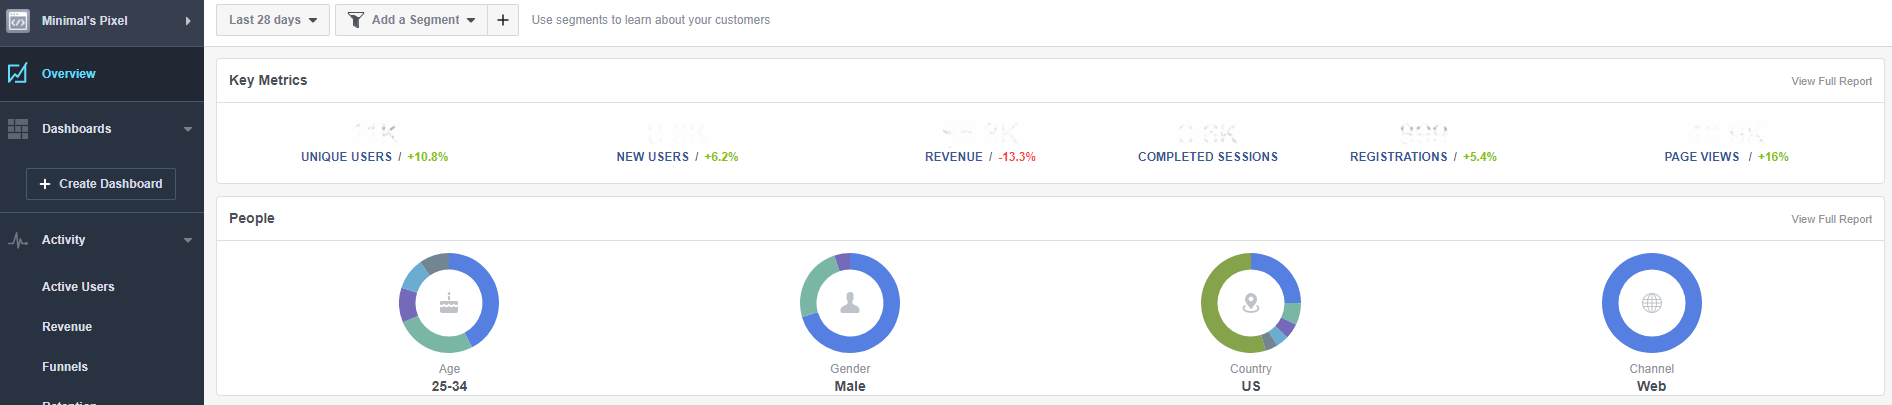 fb analytics overview small